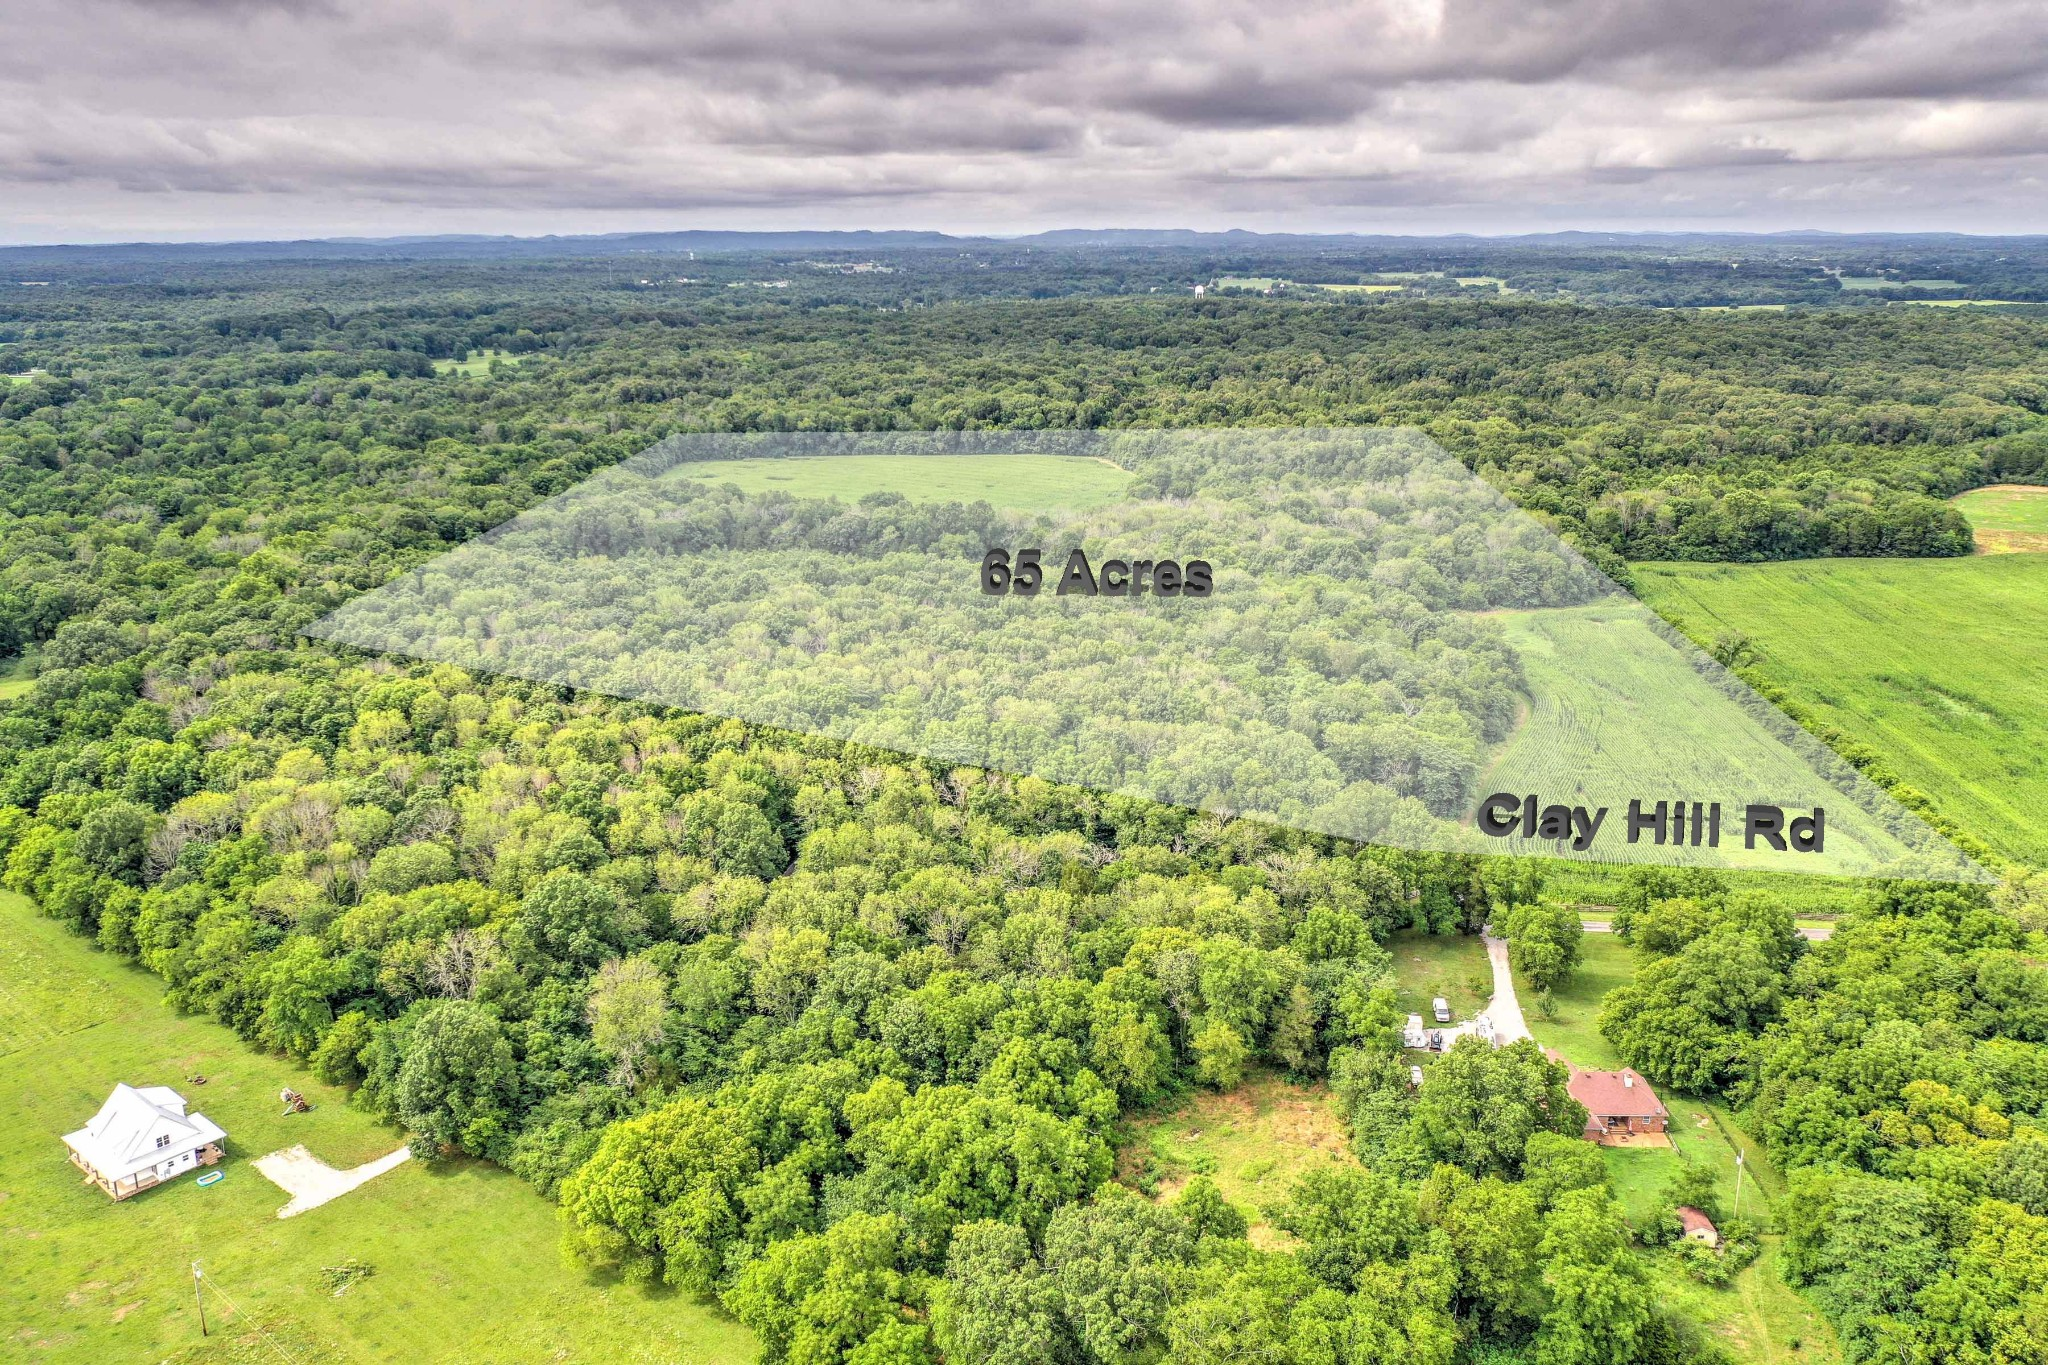 0 Clay Hill Rd Property Photo - Lewisburg, TN real estate listing